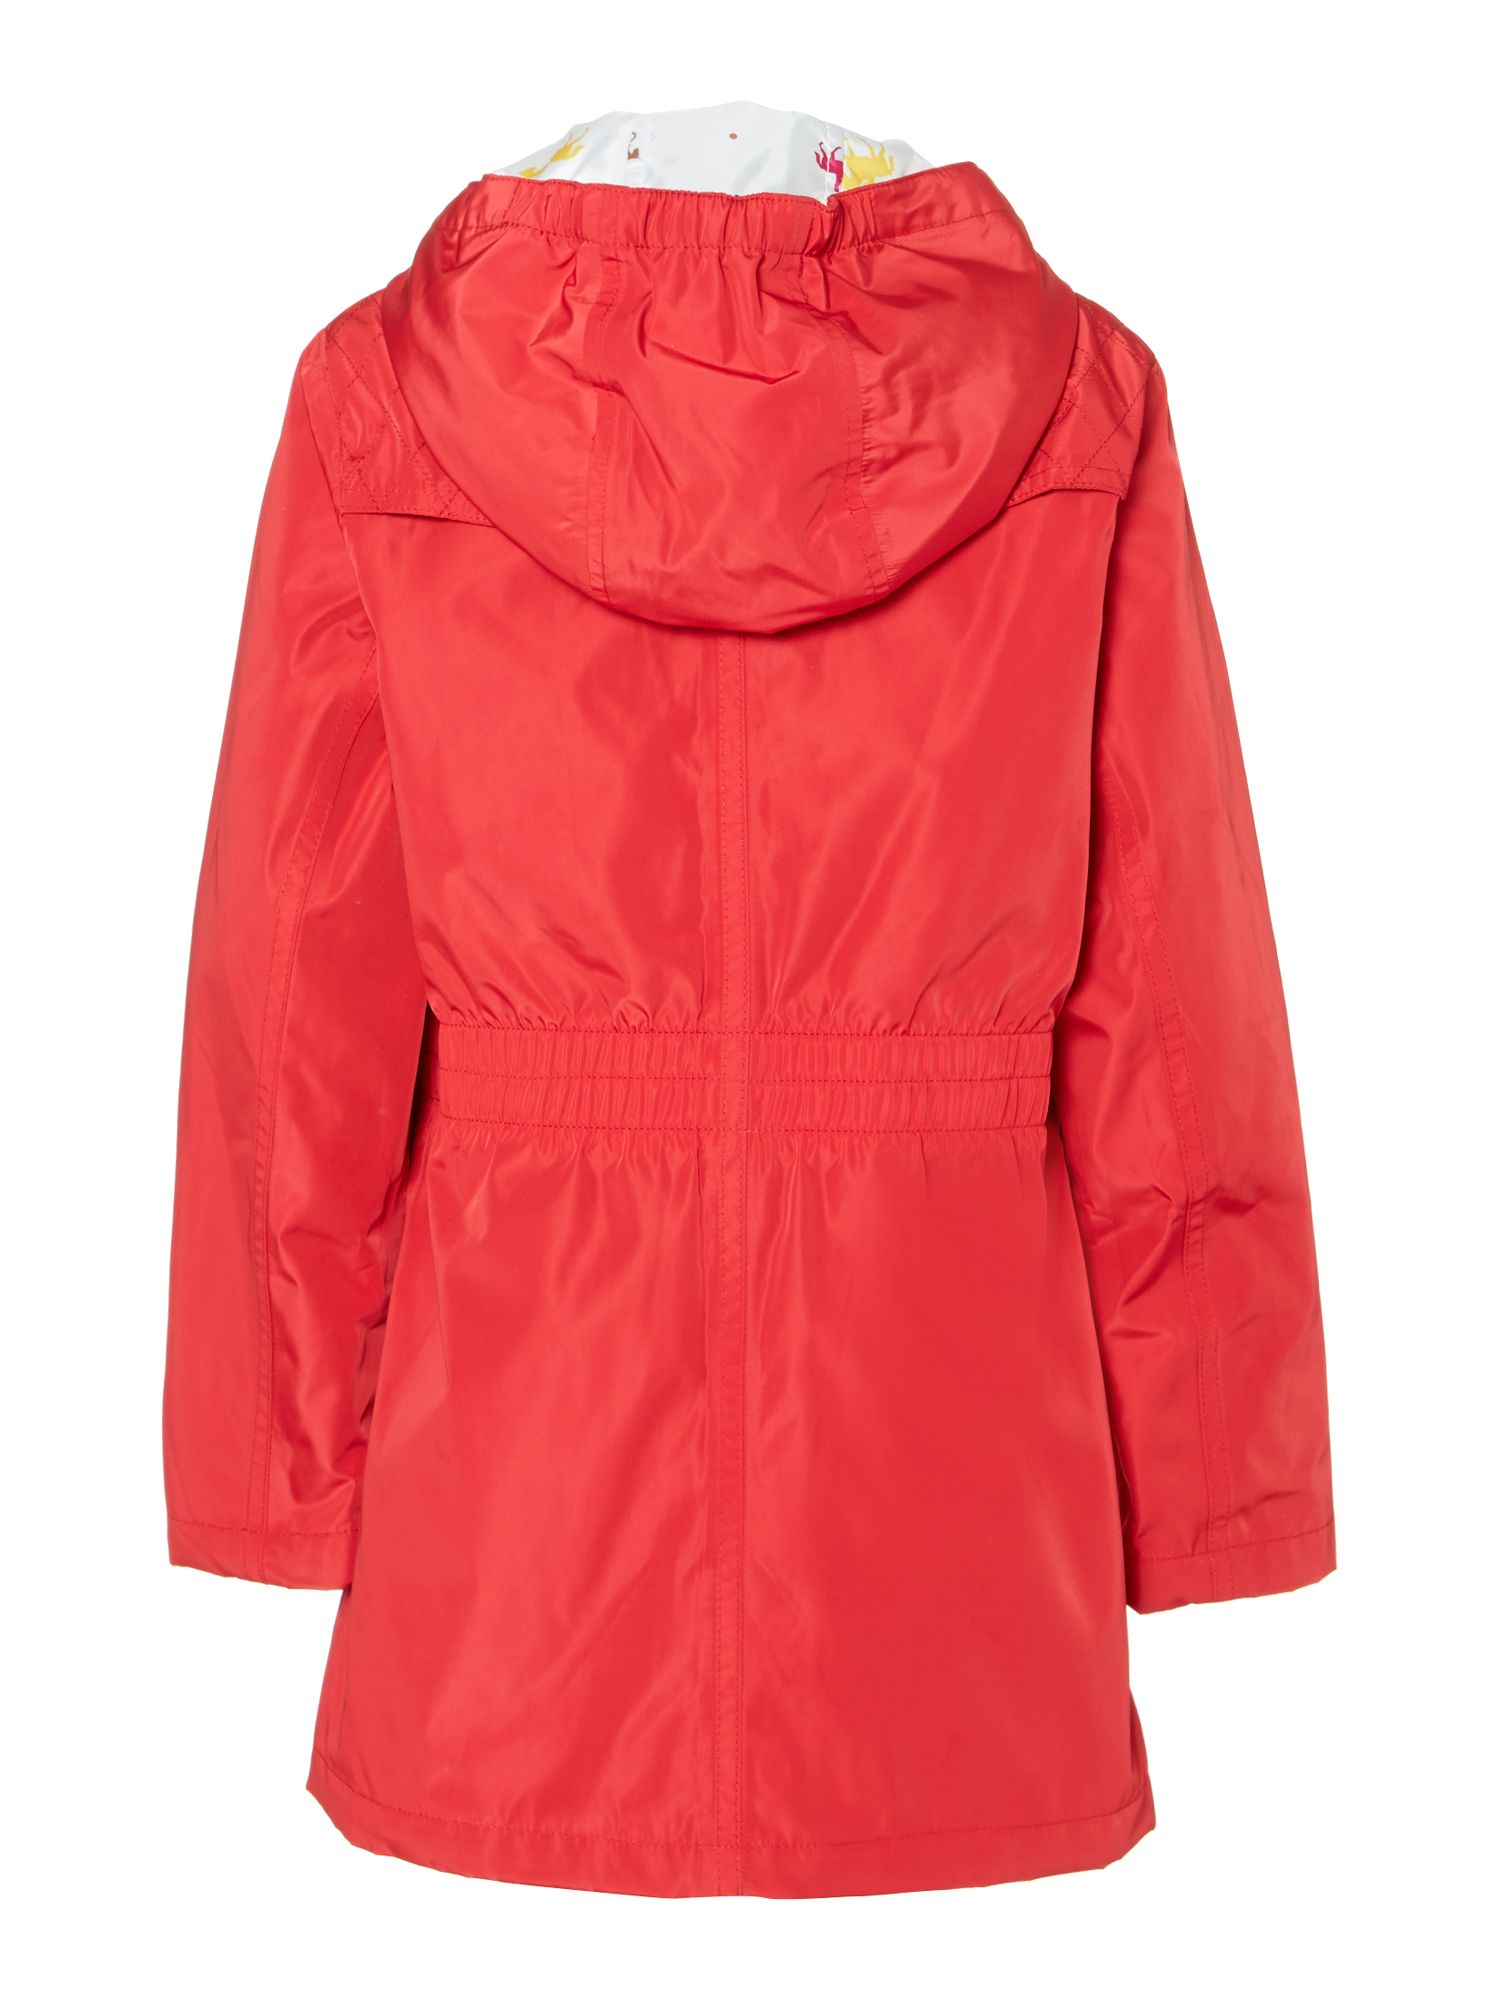 Girl's waterproof hooded parka